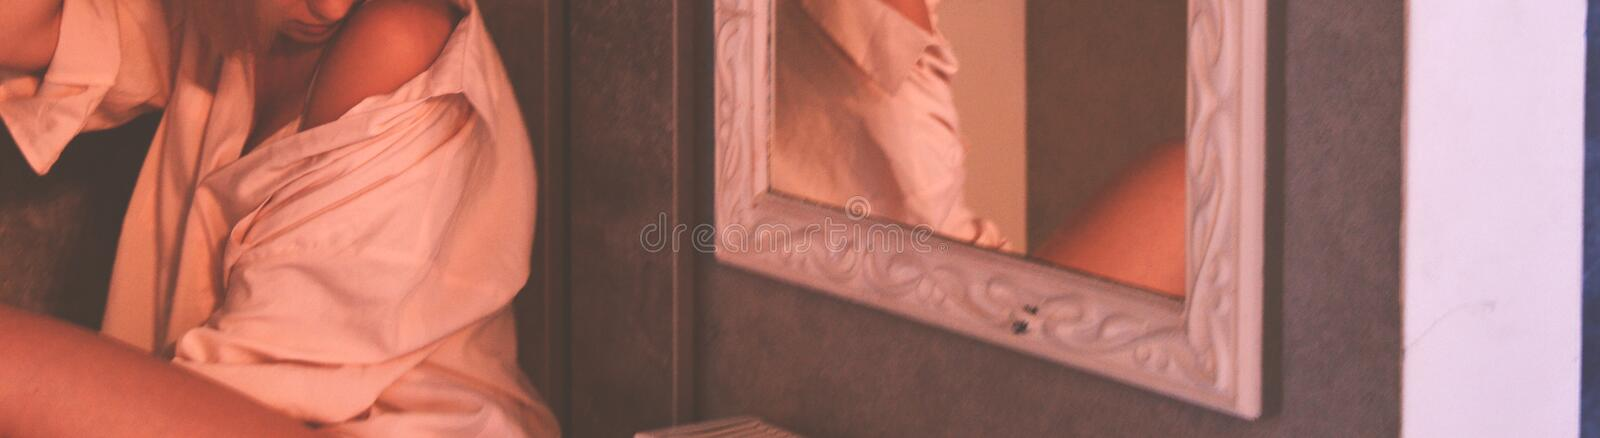 Woman Wearing White Top Near Mirror With White Wooden Frame royalty free stock photography